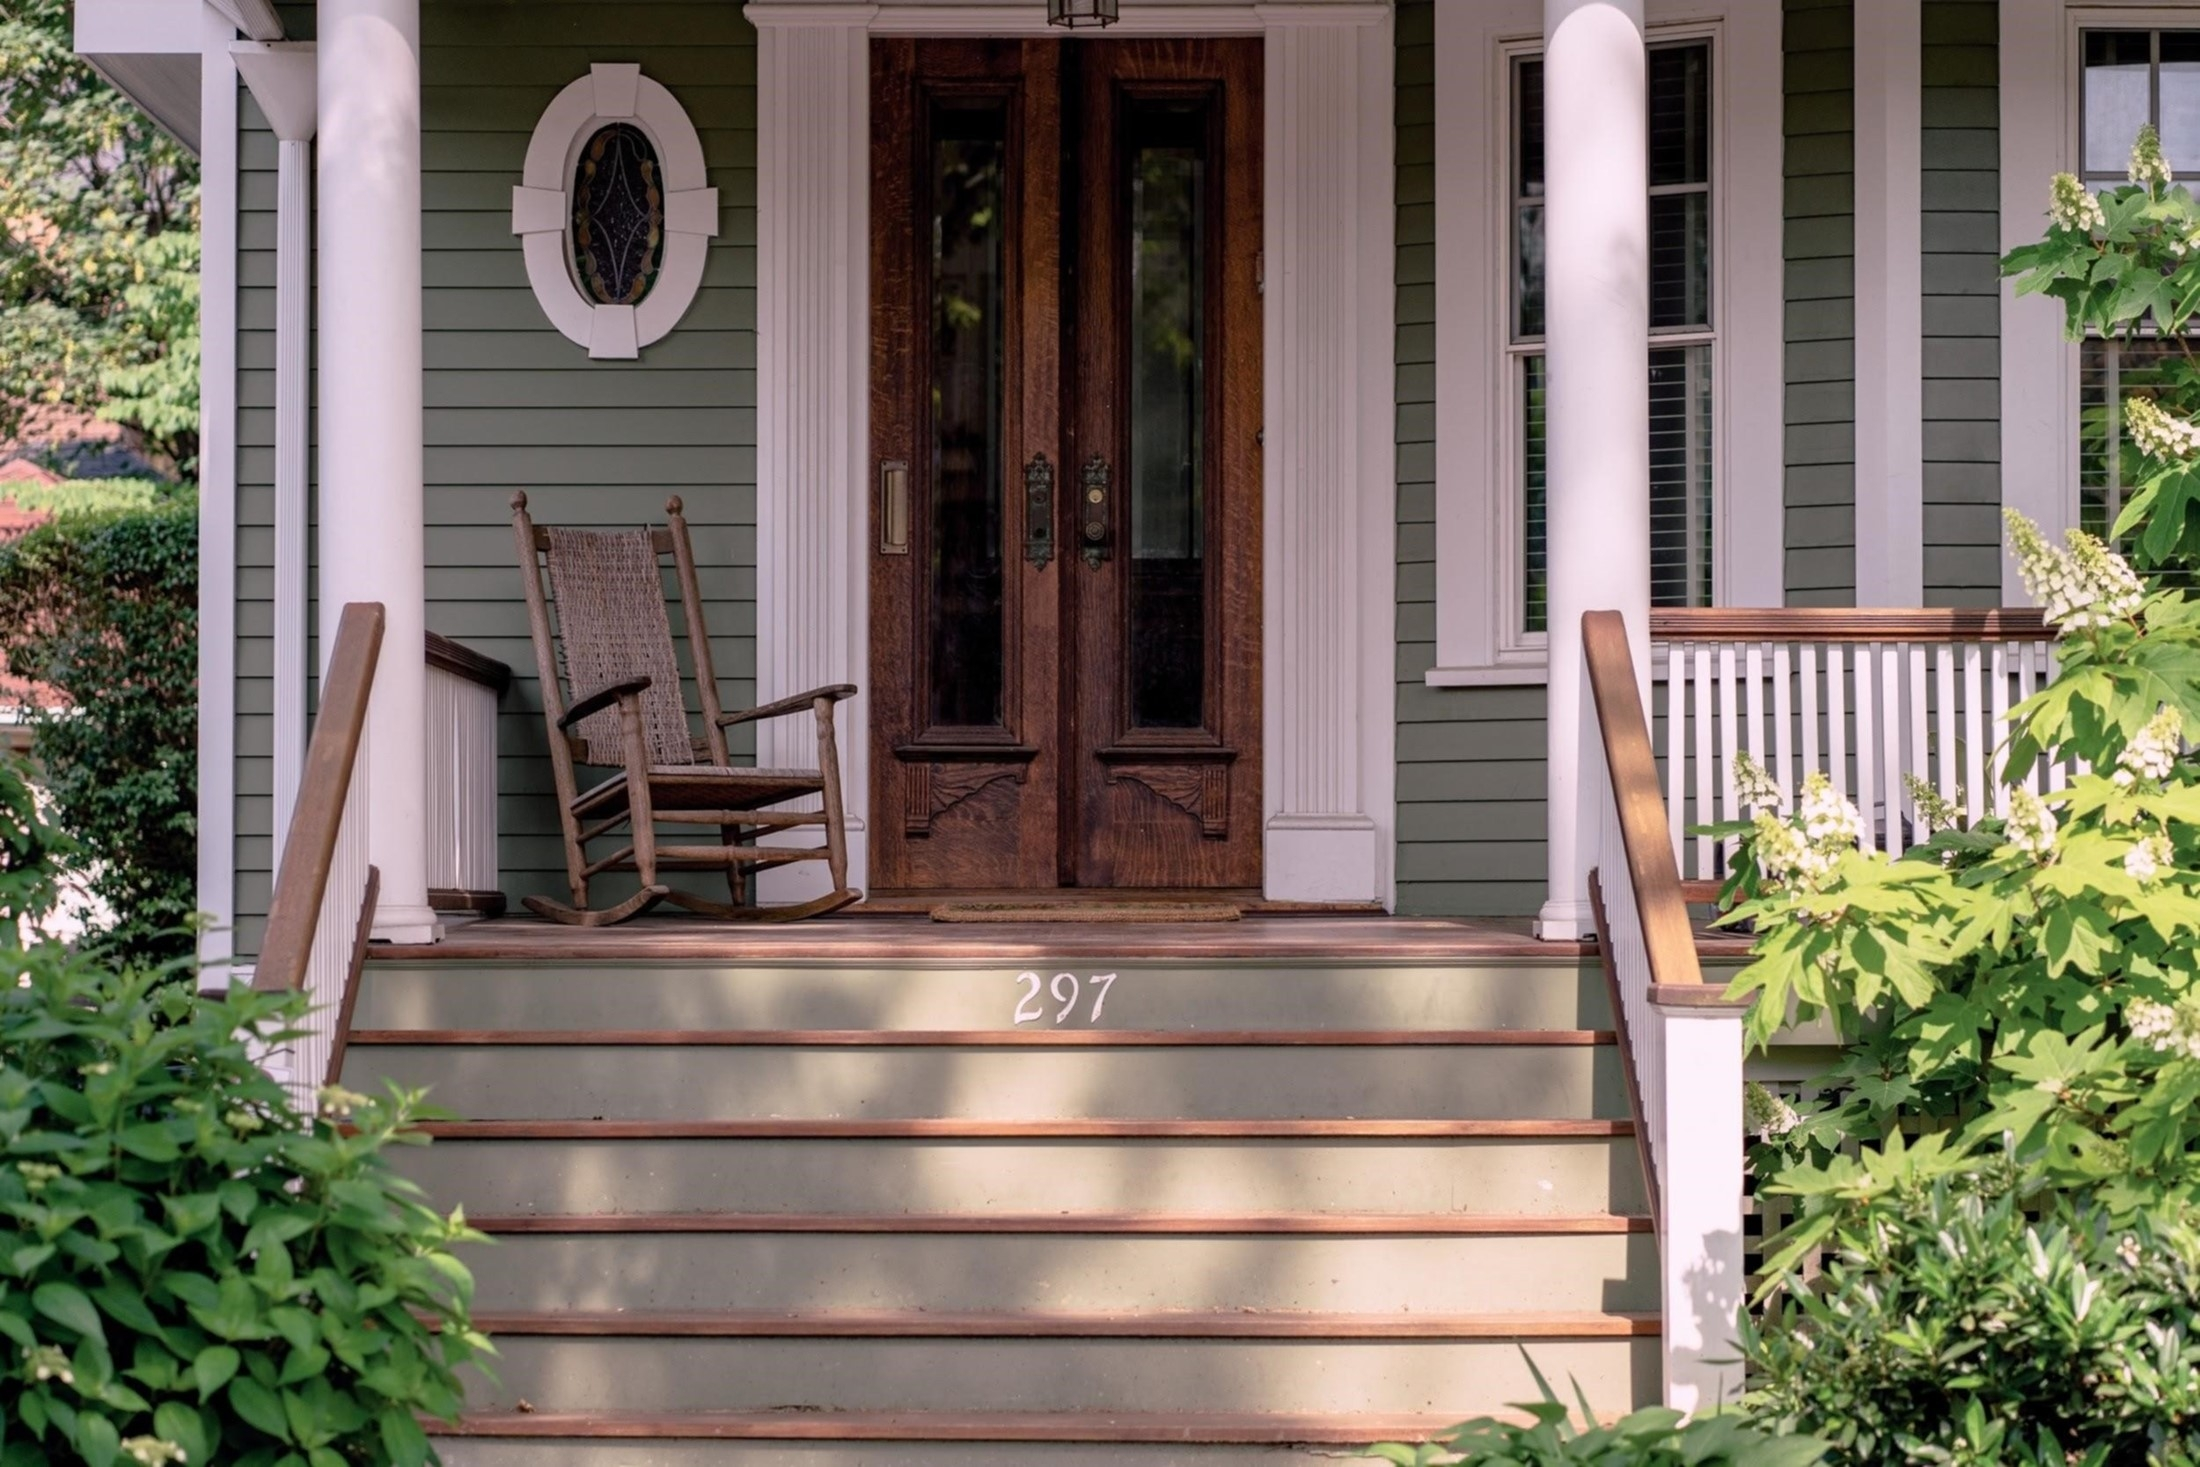 How To Build A Porch Steps For Building A Front Porch Deck | Premade Wooden Steps For Porch | Cedar Tone | Deck Stairs | Fiberglass | Concrete Stairs | Manufactured Homes